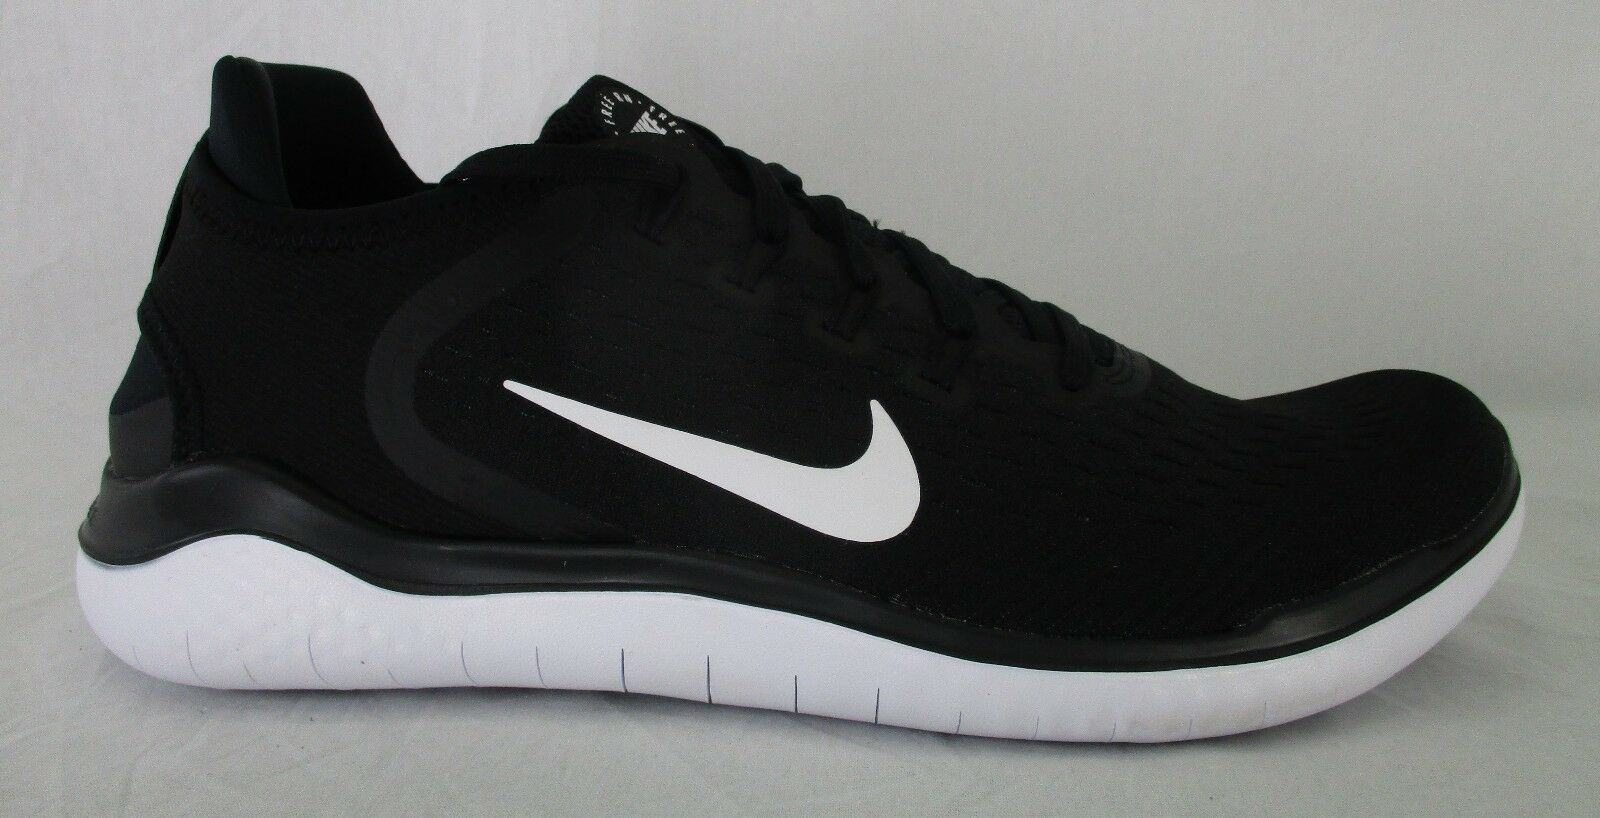 Nike Mens Shoes Free RN 2018 Running Shoes Mens 942836 001 Black/White Size 12 9d5676